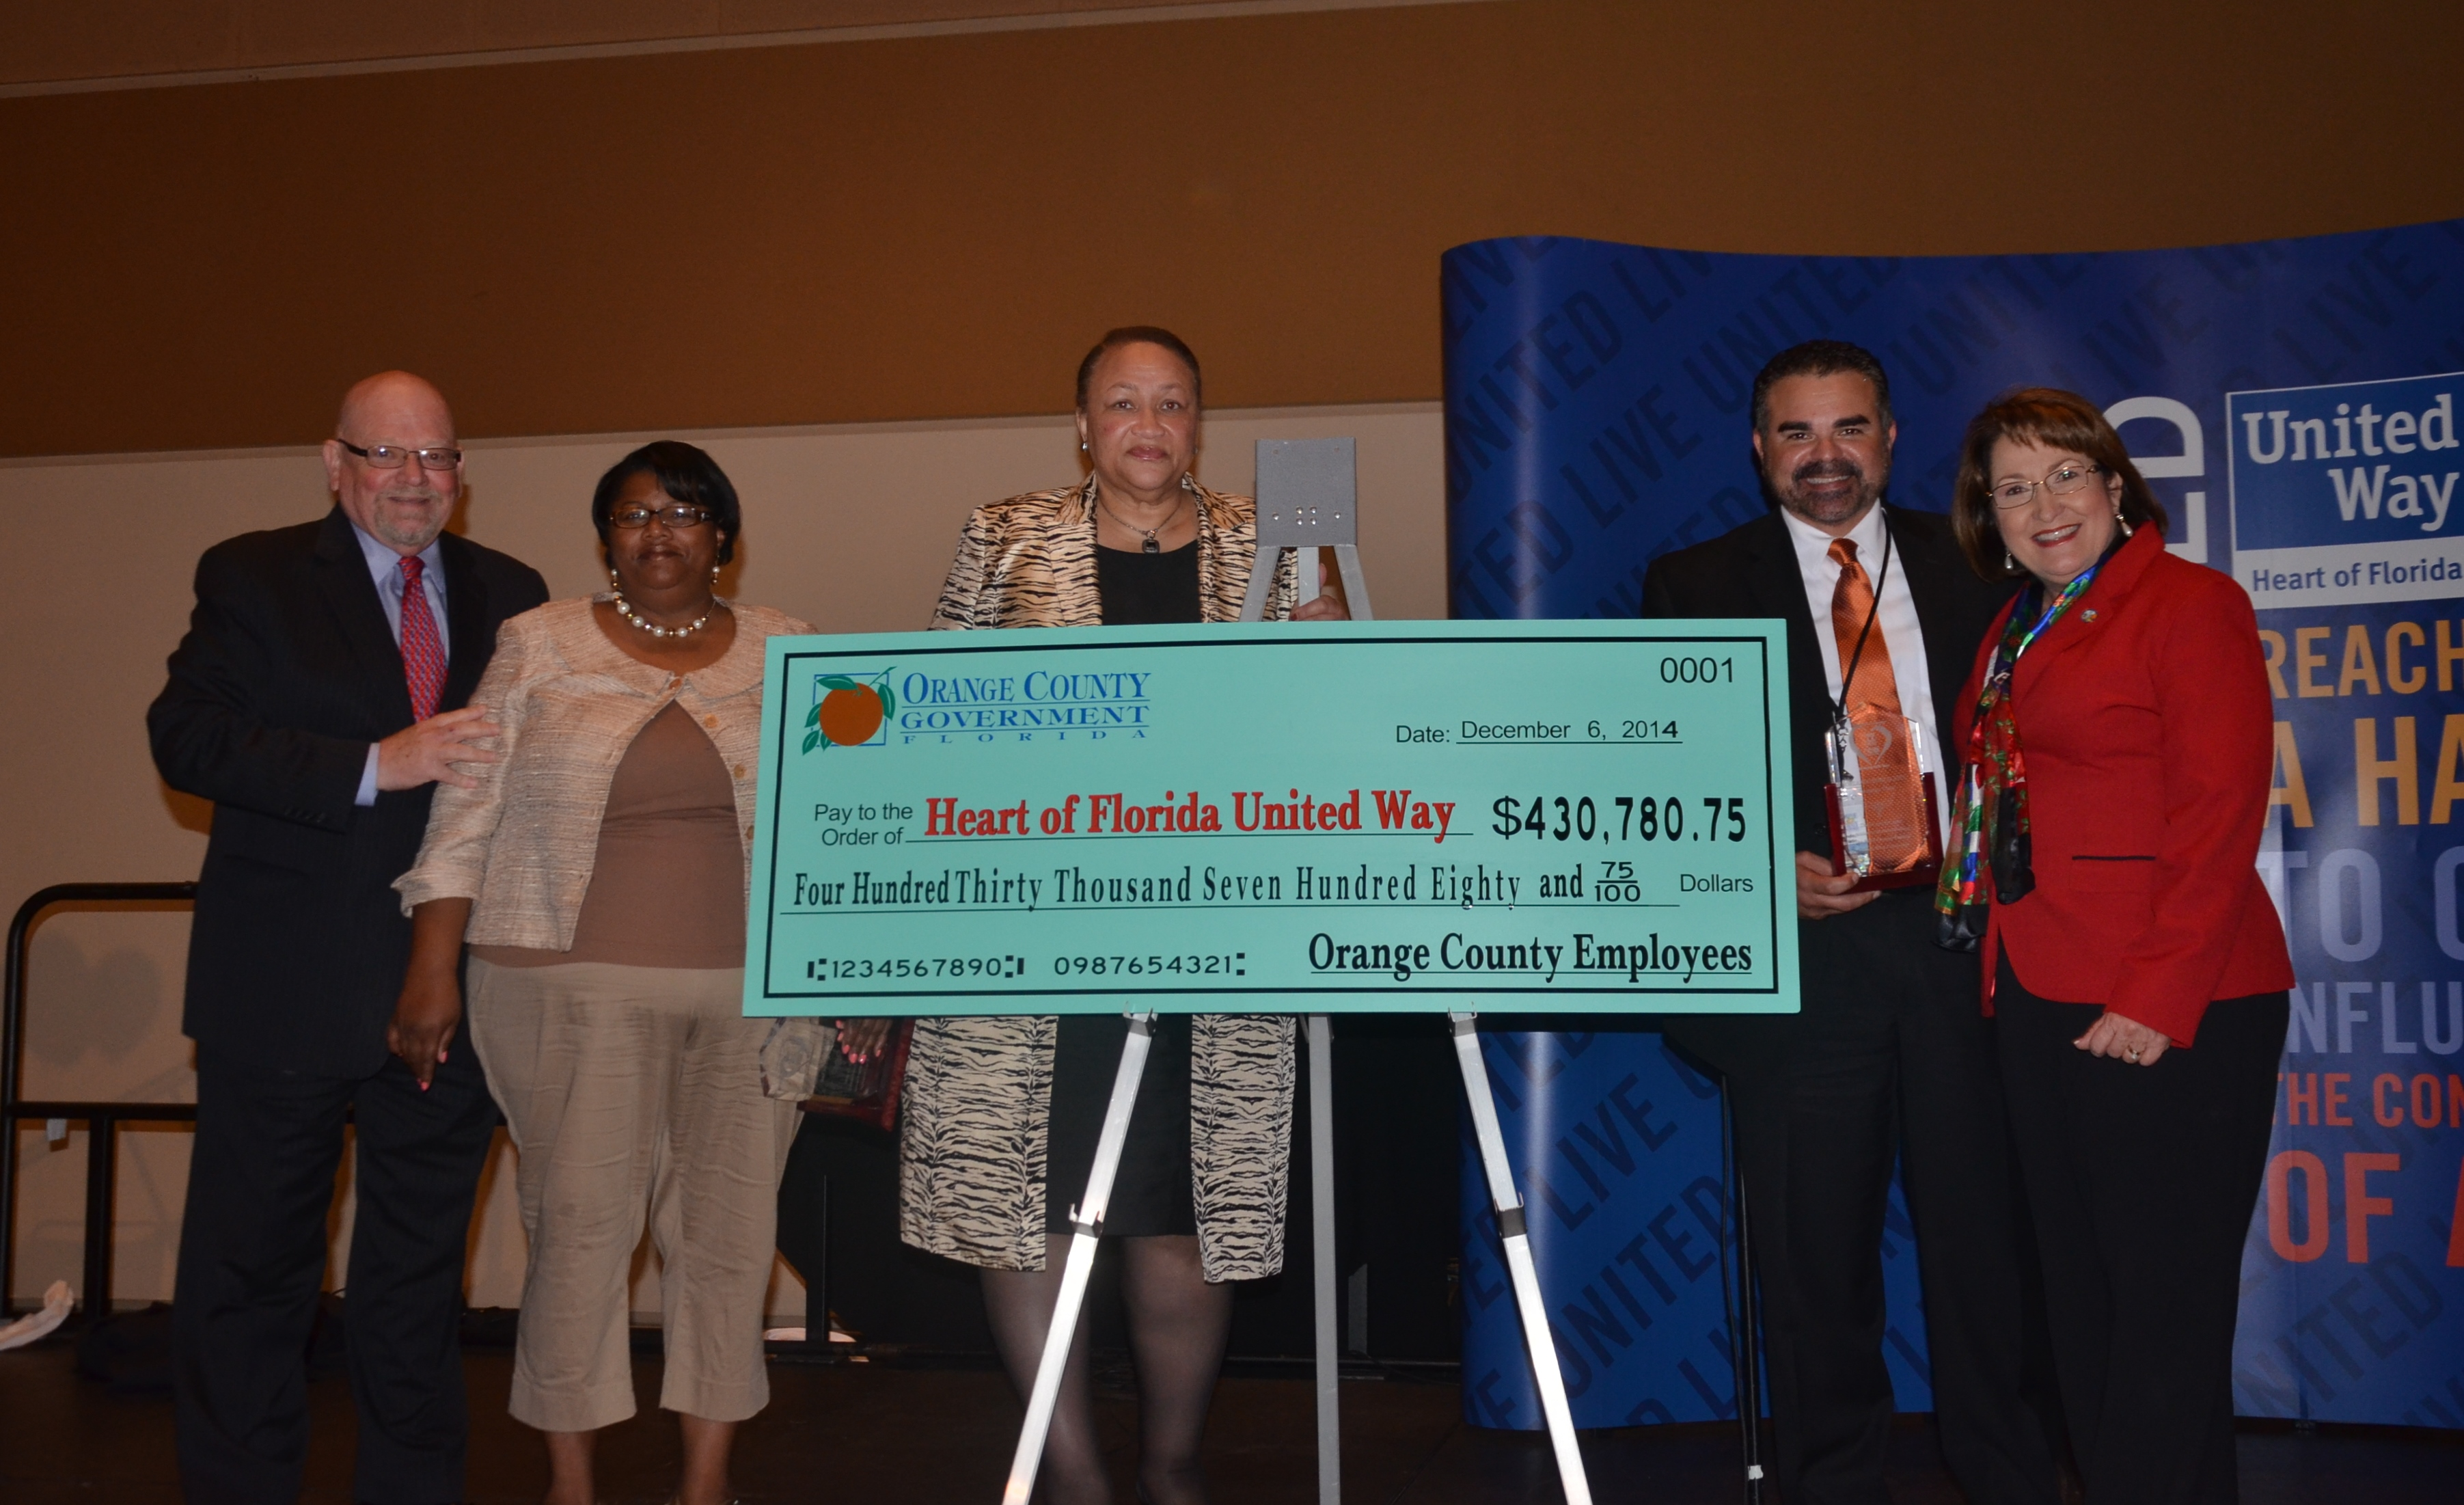 Mayor Jacobs and United Way personnel receiving check